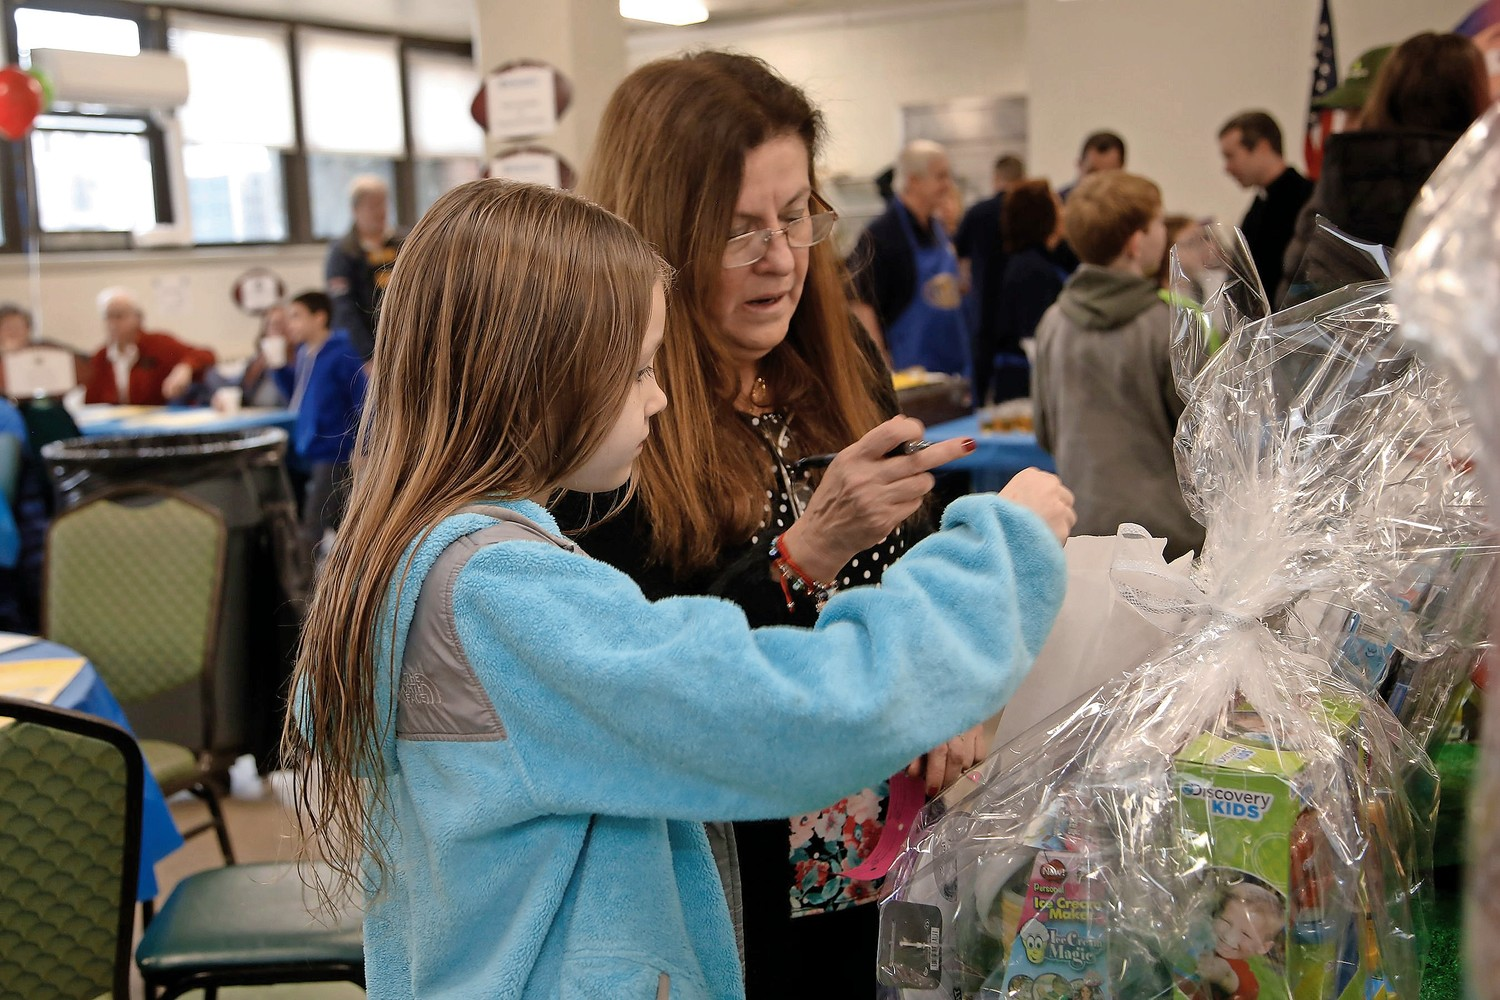 Hailey Naughton, age 9, with her grandmother, Arlette Naughton, choose their raffles.